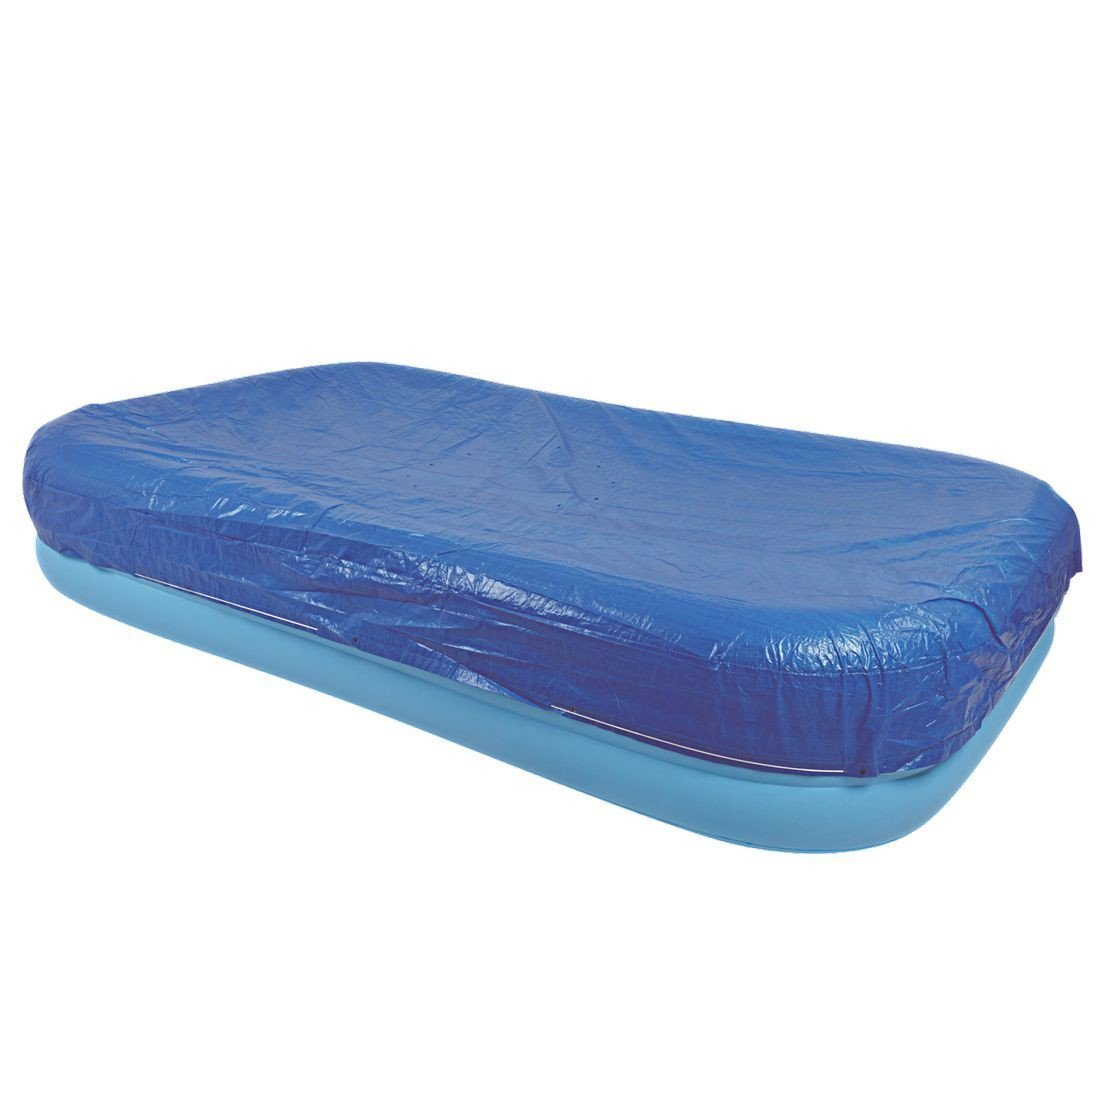 FiNeWaY@ HEAVY DUTY DELUXE RECTANGULAR FAMILY SWIMMING PADDLING POOL COVER FITS POOL SIZE (103